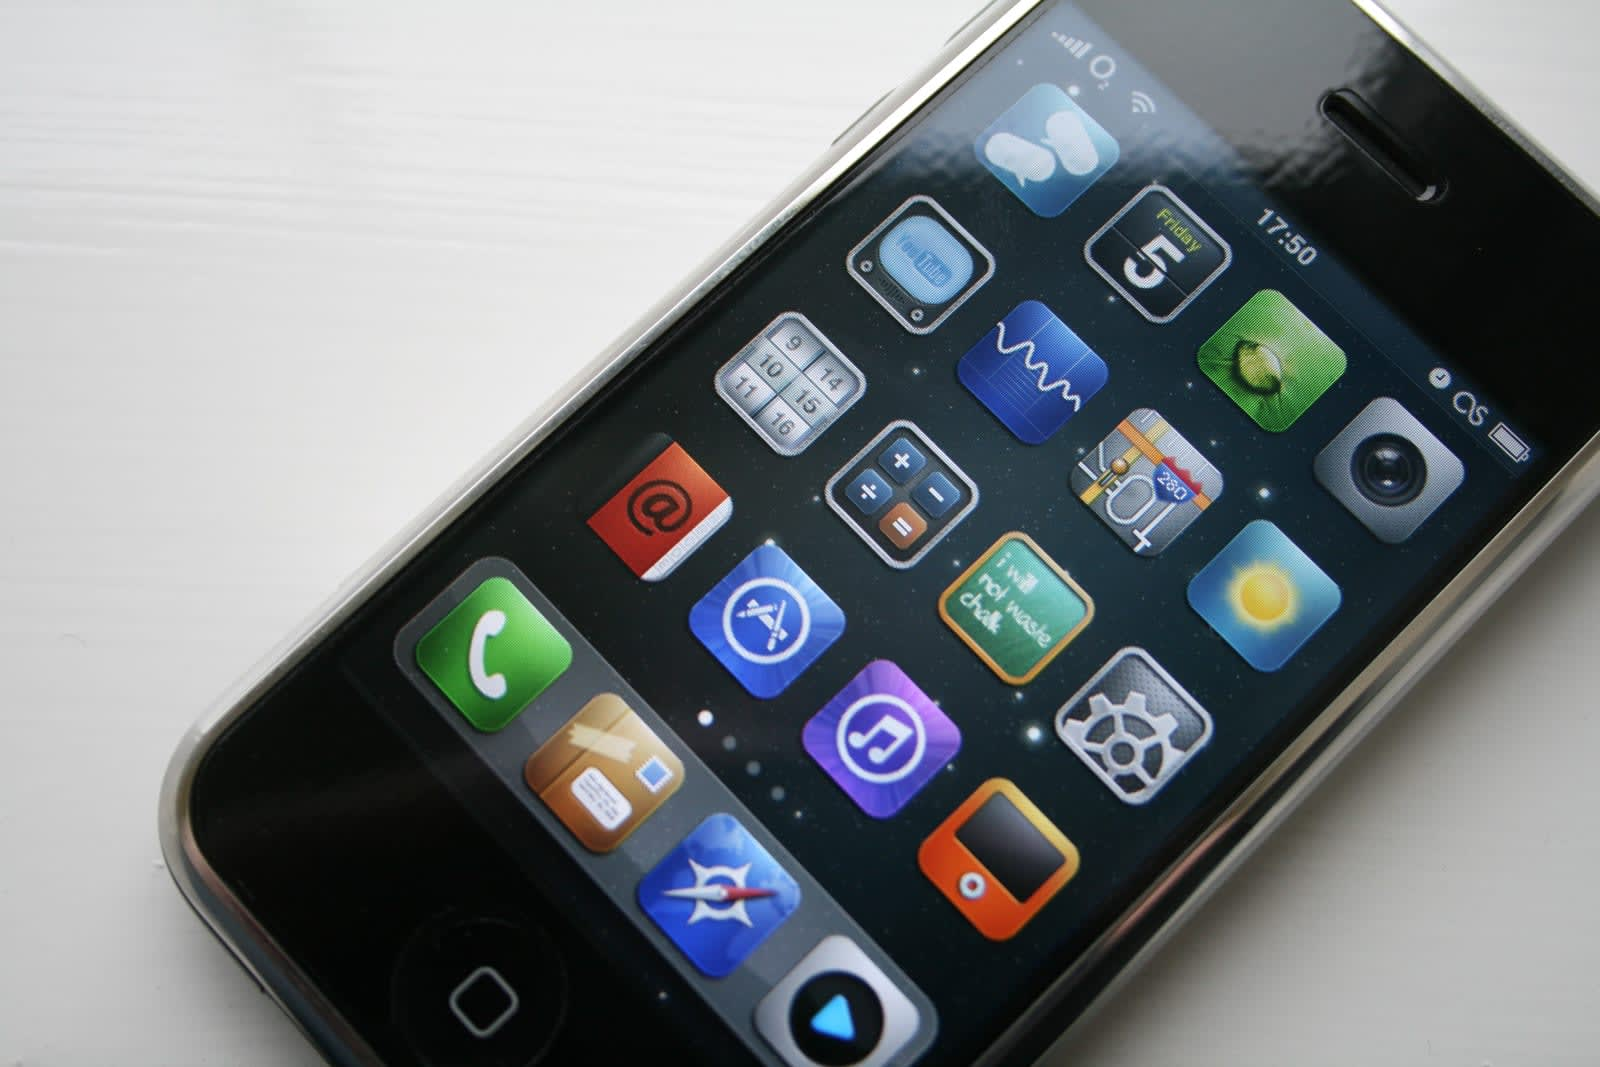 Cydia's app store for jailbroken iPhones shuts down